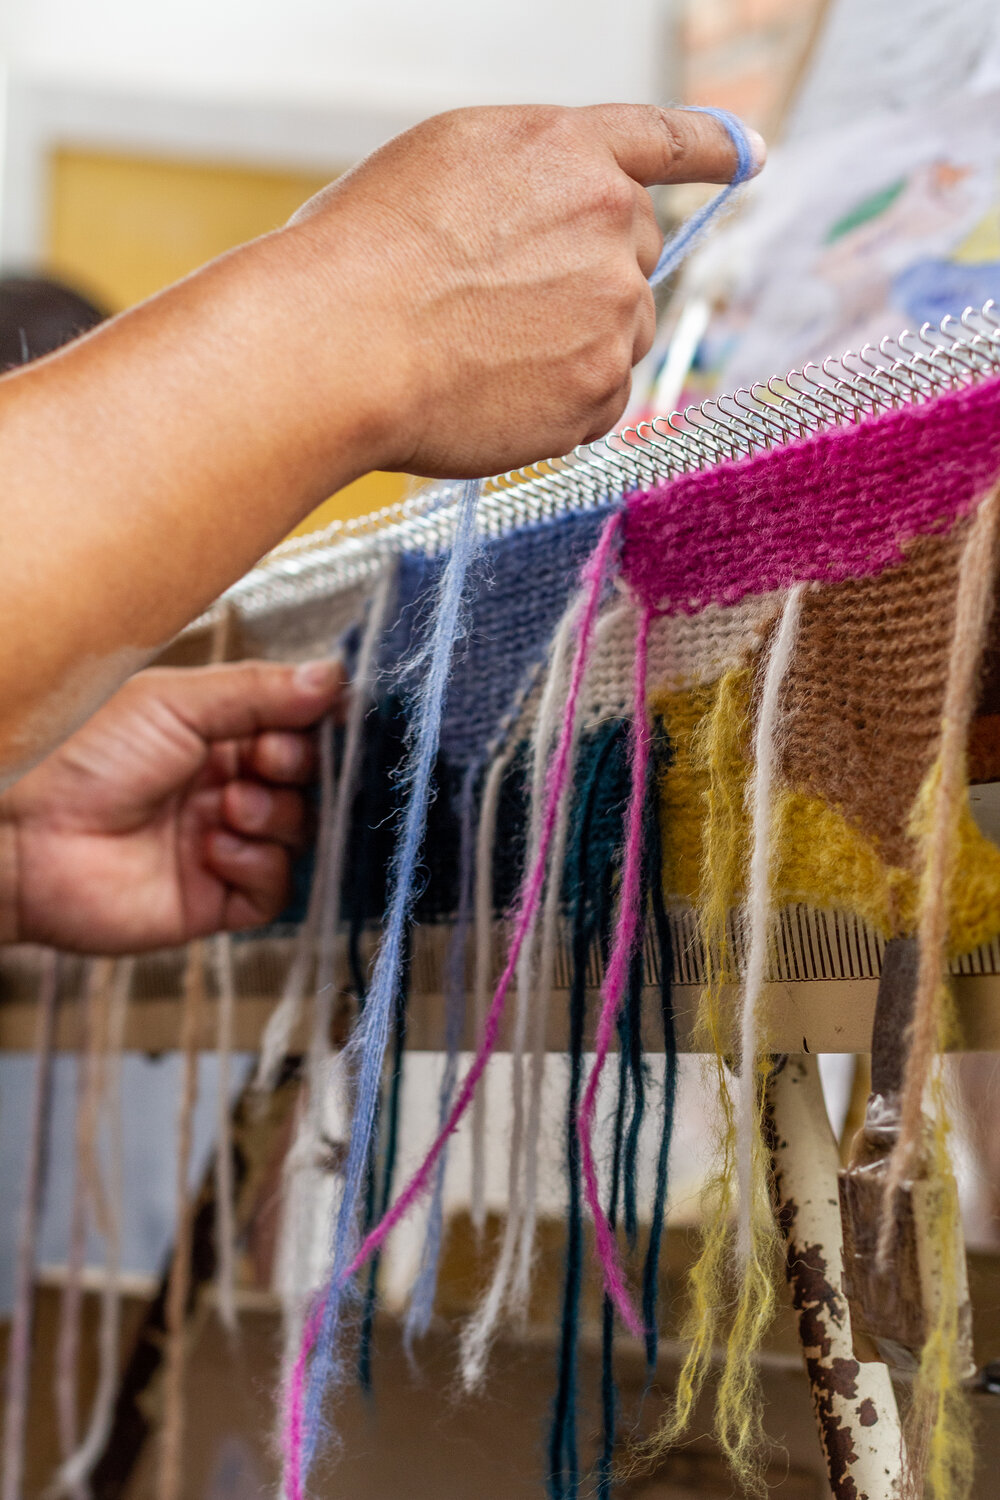 Yarn is hand-laid in across the machine needles to build and create the shapes of the pattern within the knitting.